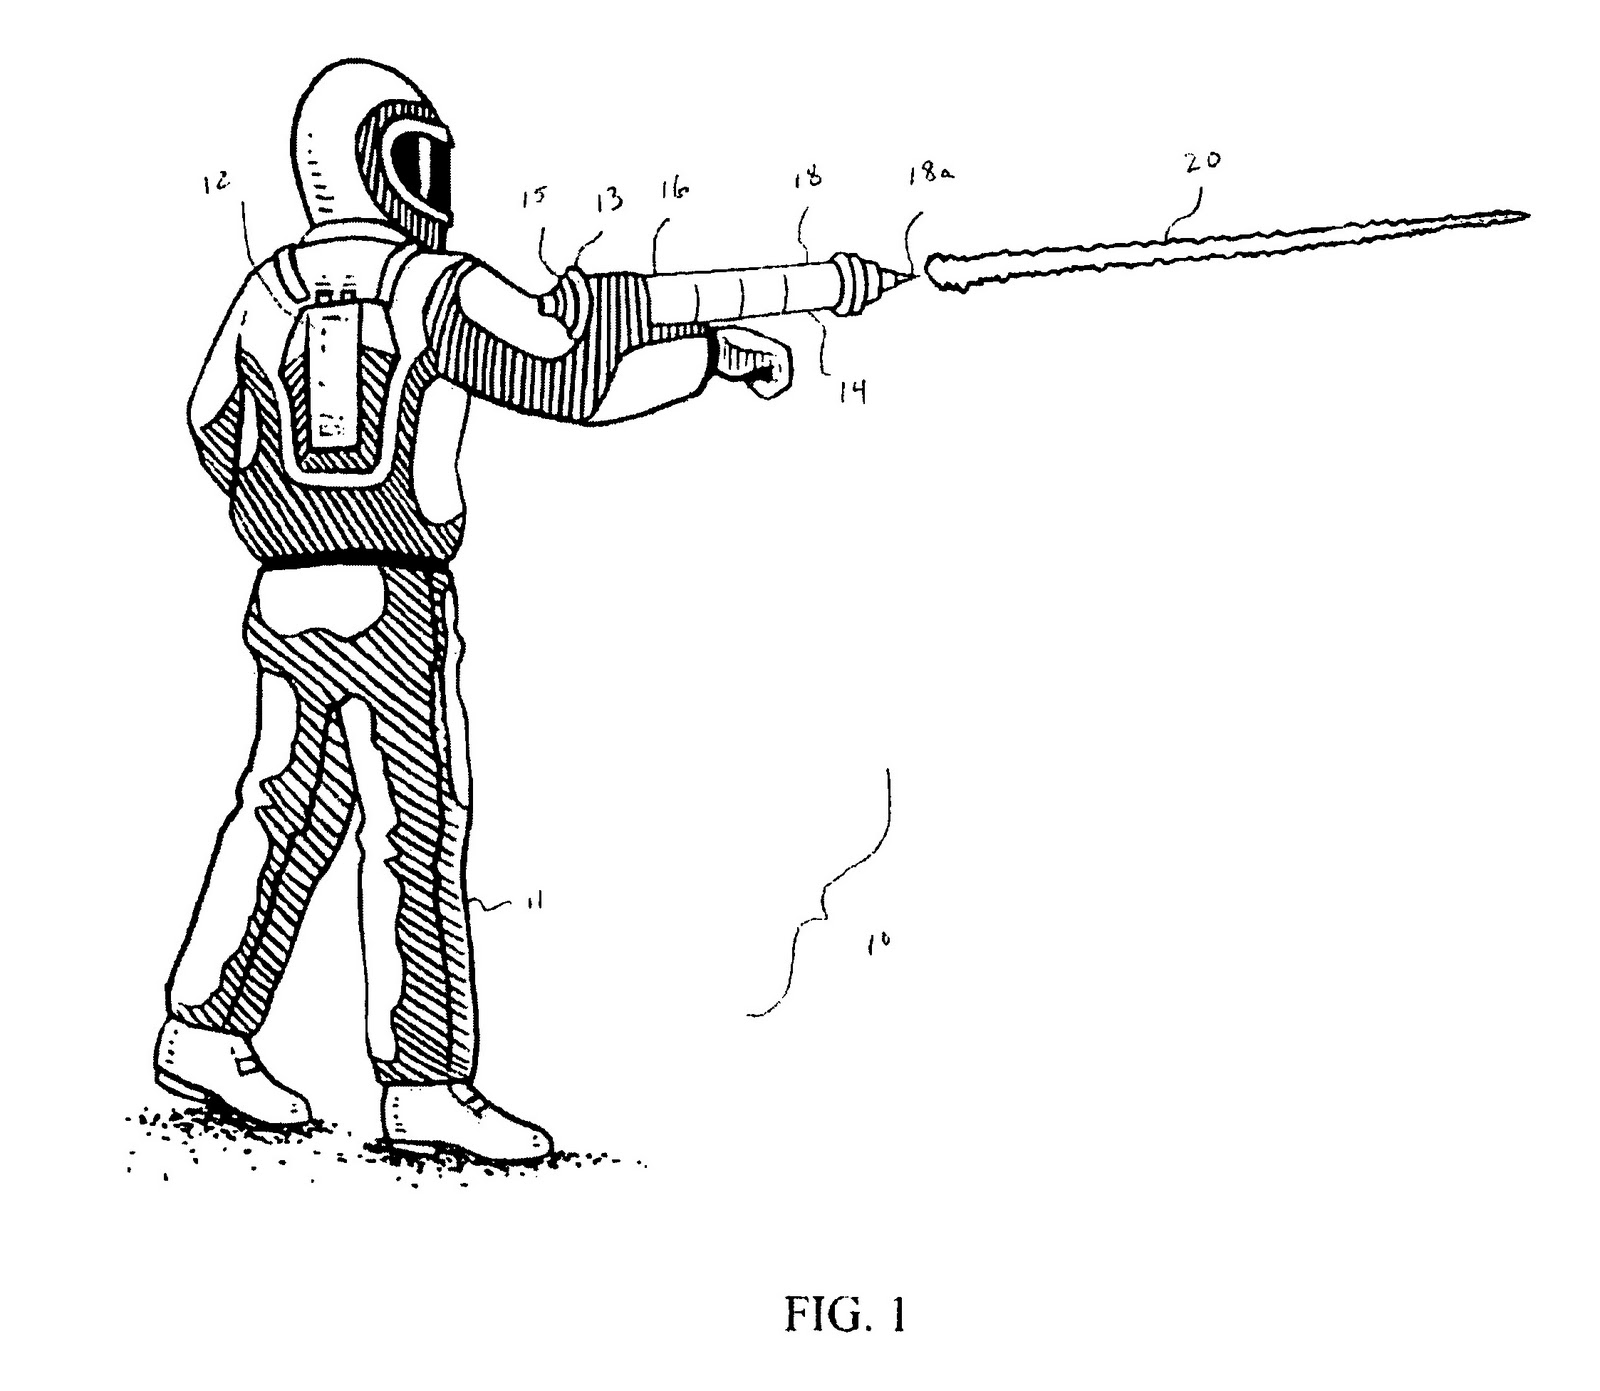 Tesla Radiant Power Engine Diagram Solid State Coil Suit Allows Wearer To Generate And Direct Lightning Bolts 1600x1391